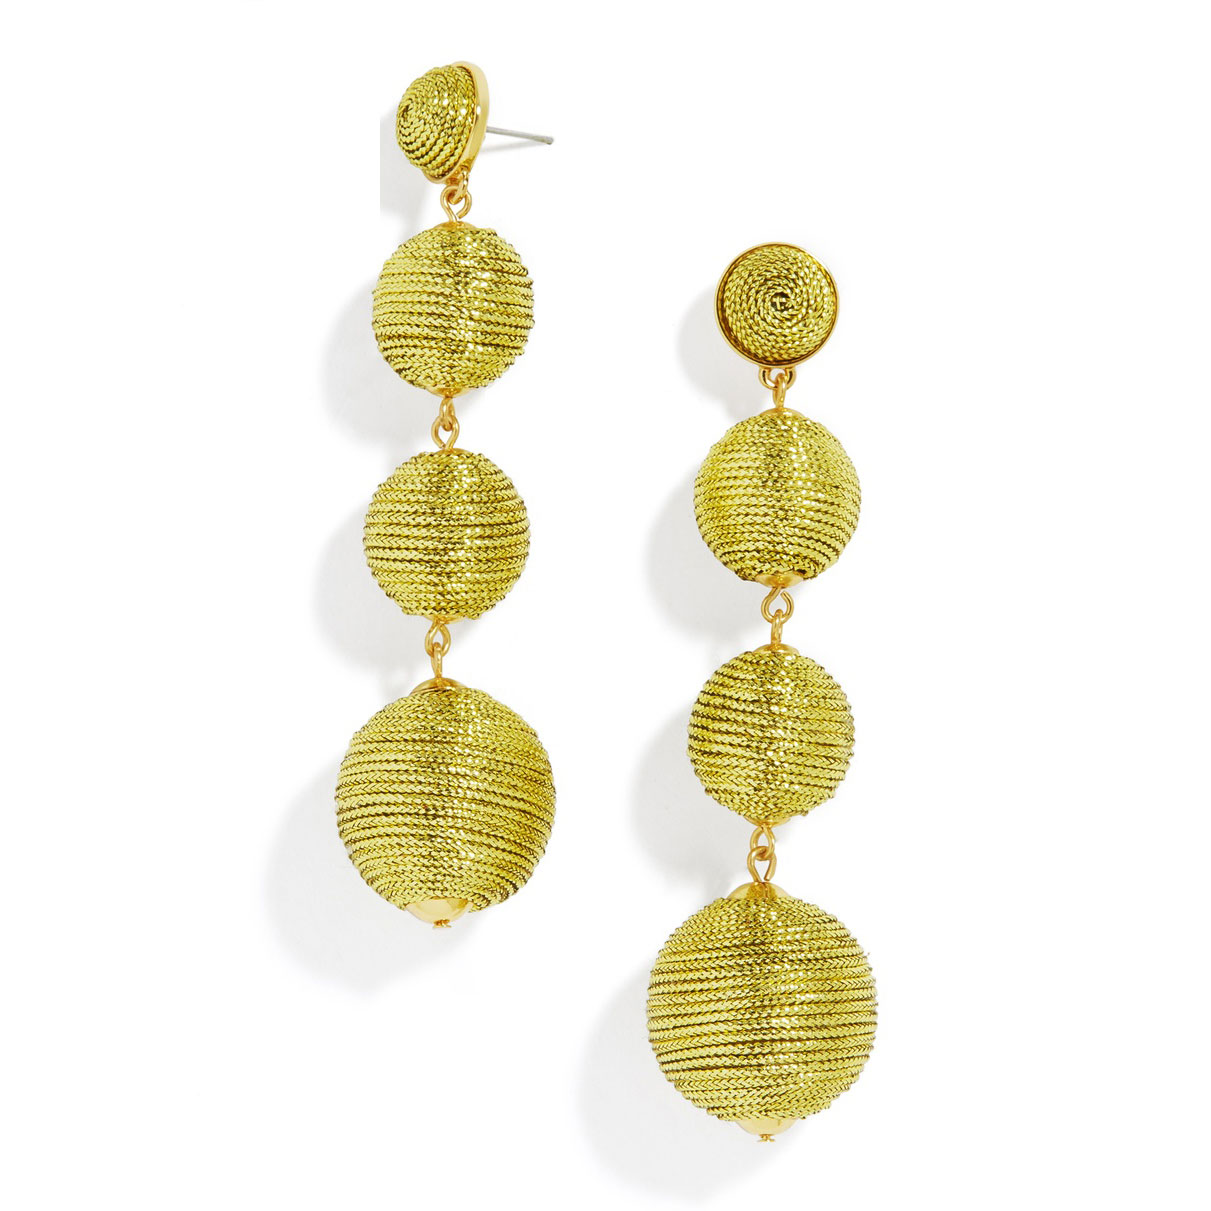 Criselda Ball Drop Earrings in Metallic Gold